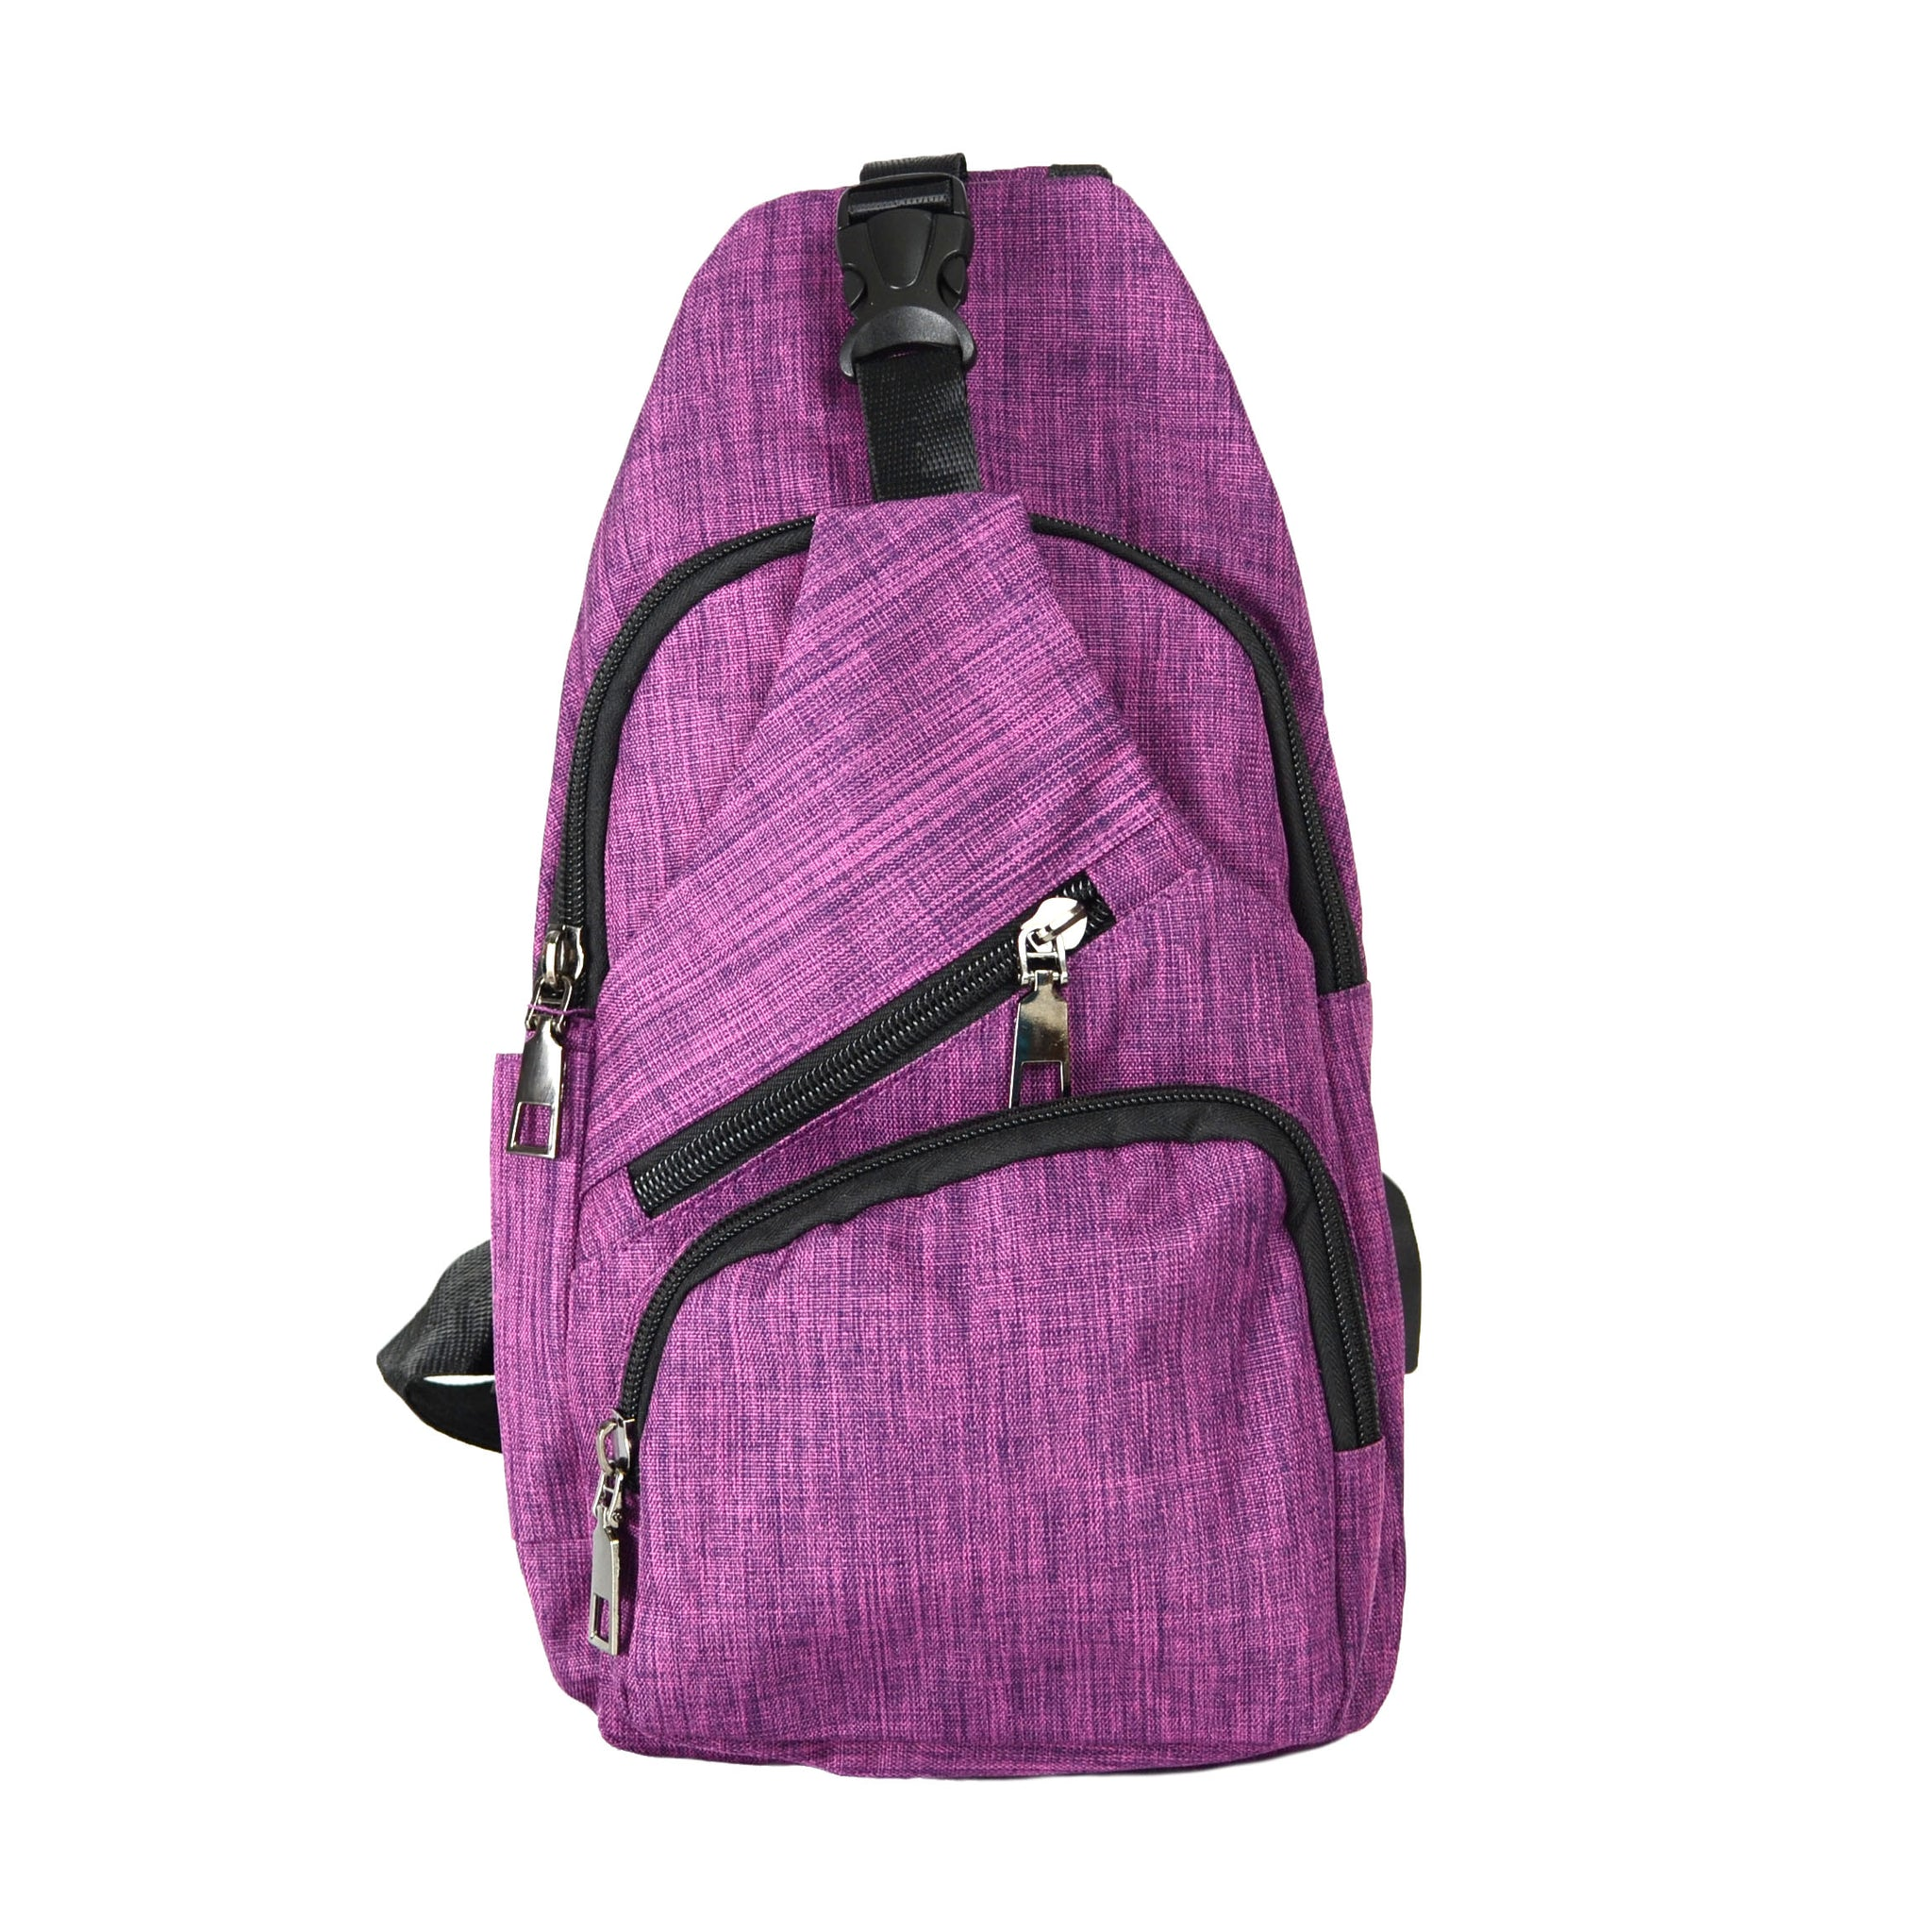 Anti-theft Sling Day Pack - Plum